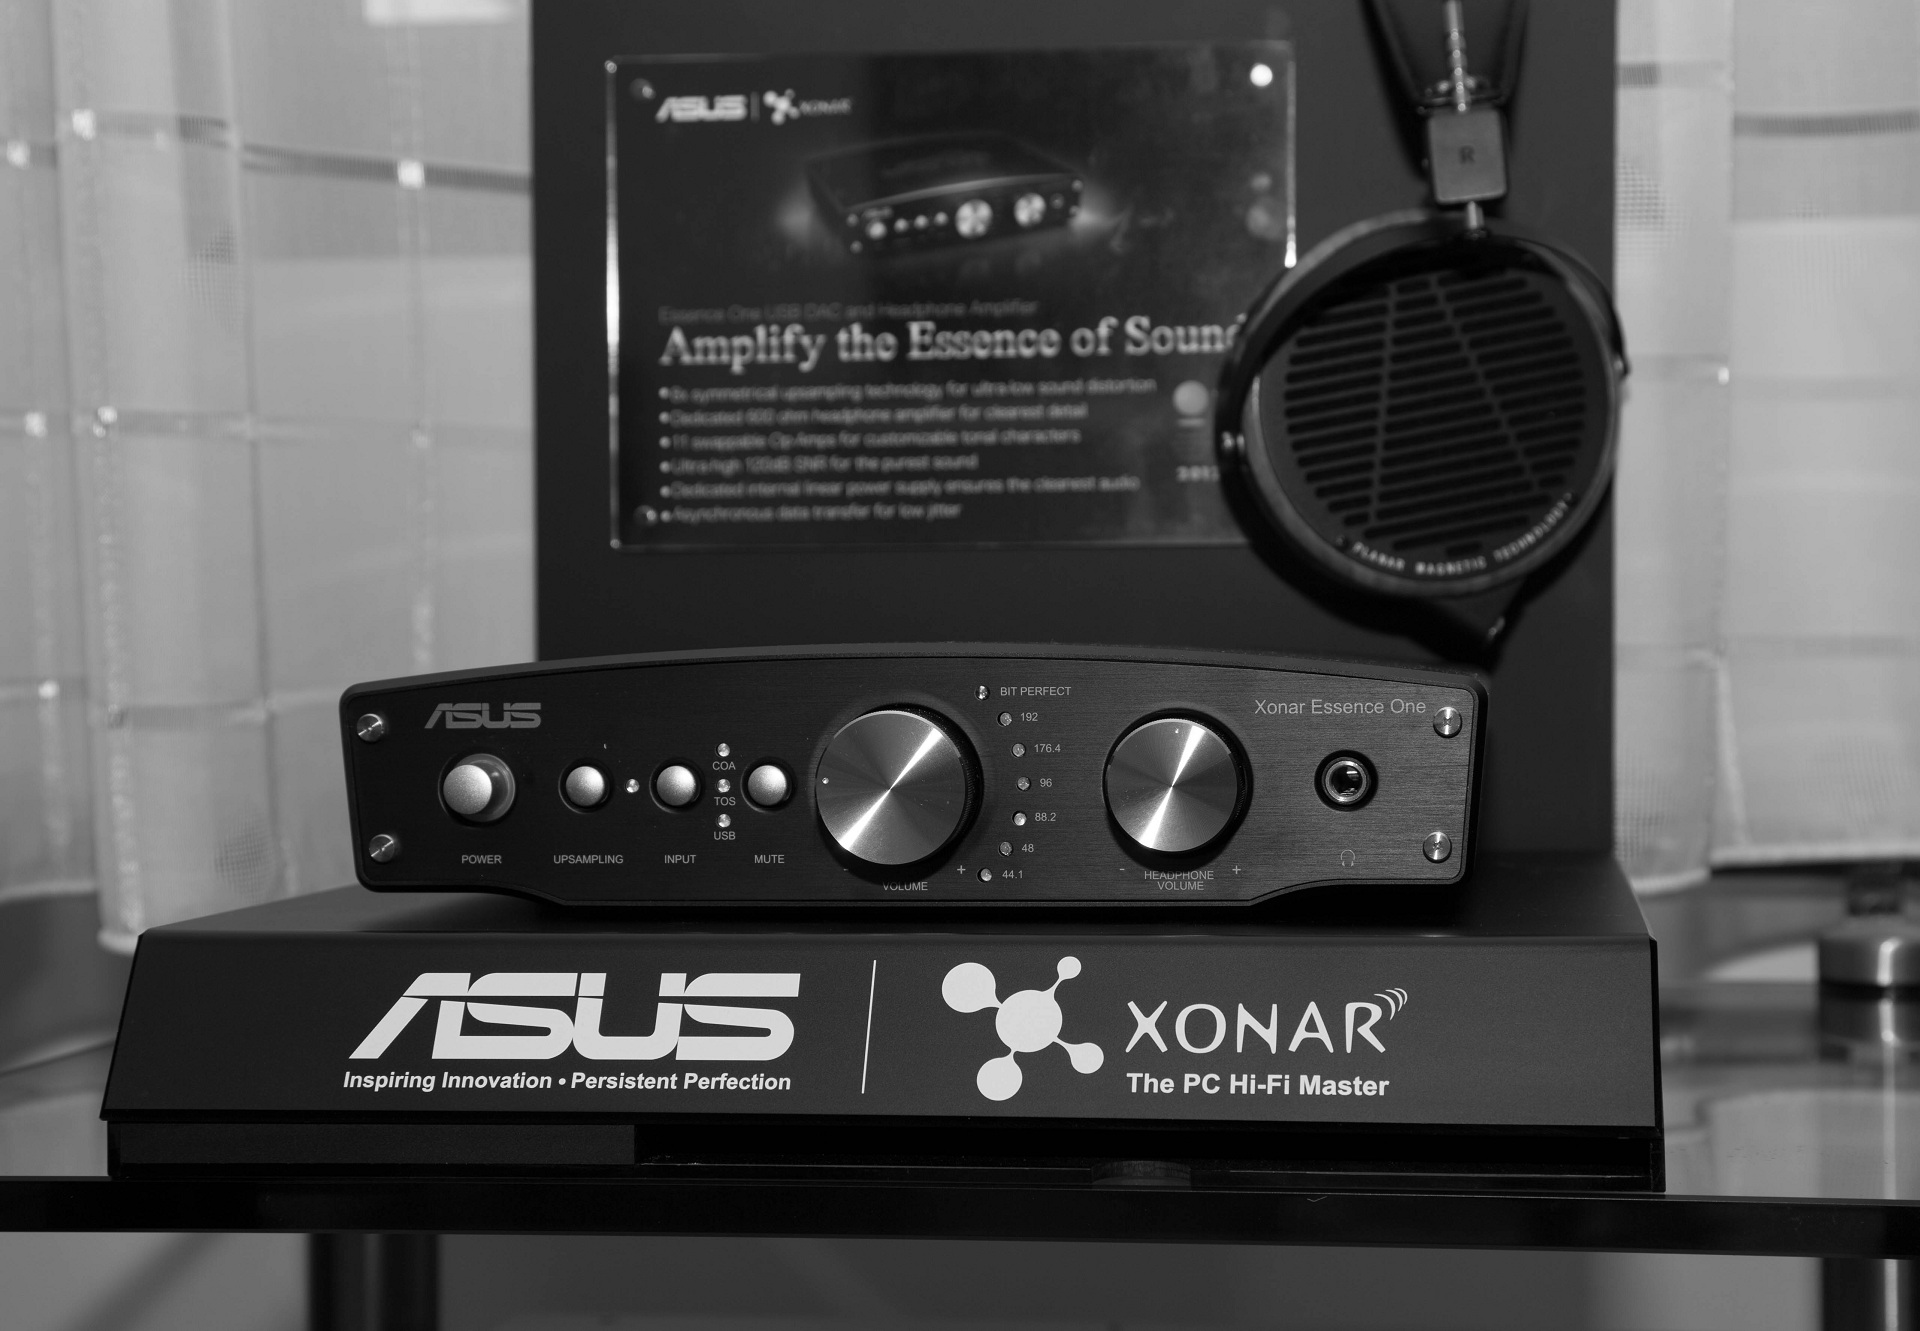 Asus Xonar Essence One Muses (1 of 1)-12